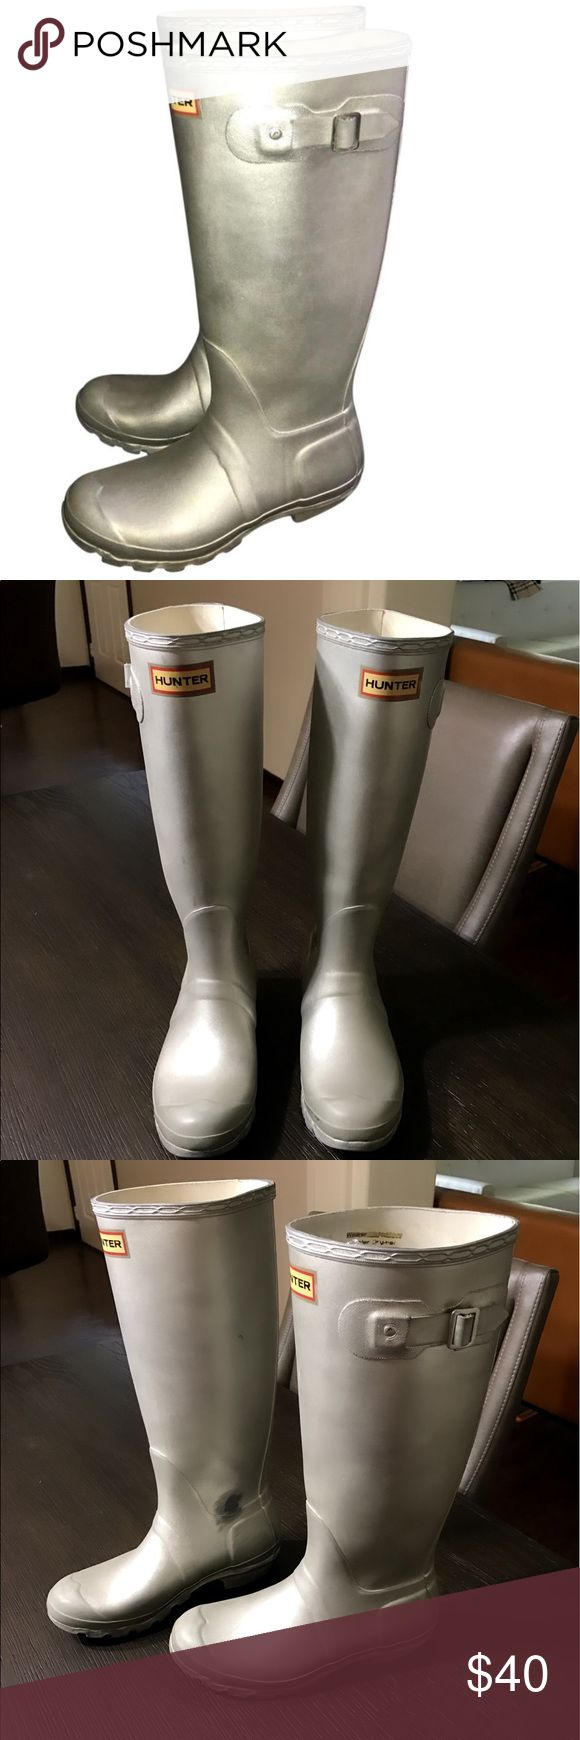 Authentic Hunter Boots silver rubber rain boots 6 Authentic Hunter Boots silver rubber rain boots 6 loved condition have scuffs/marks sold as is Hunter Boots Shoes Winter & Rain Boots